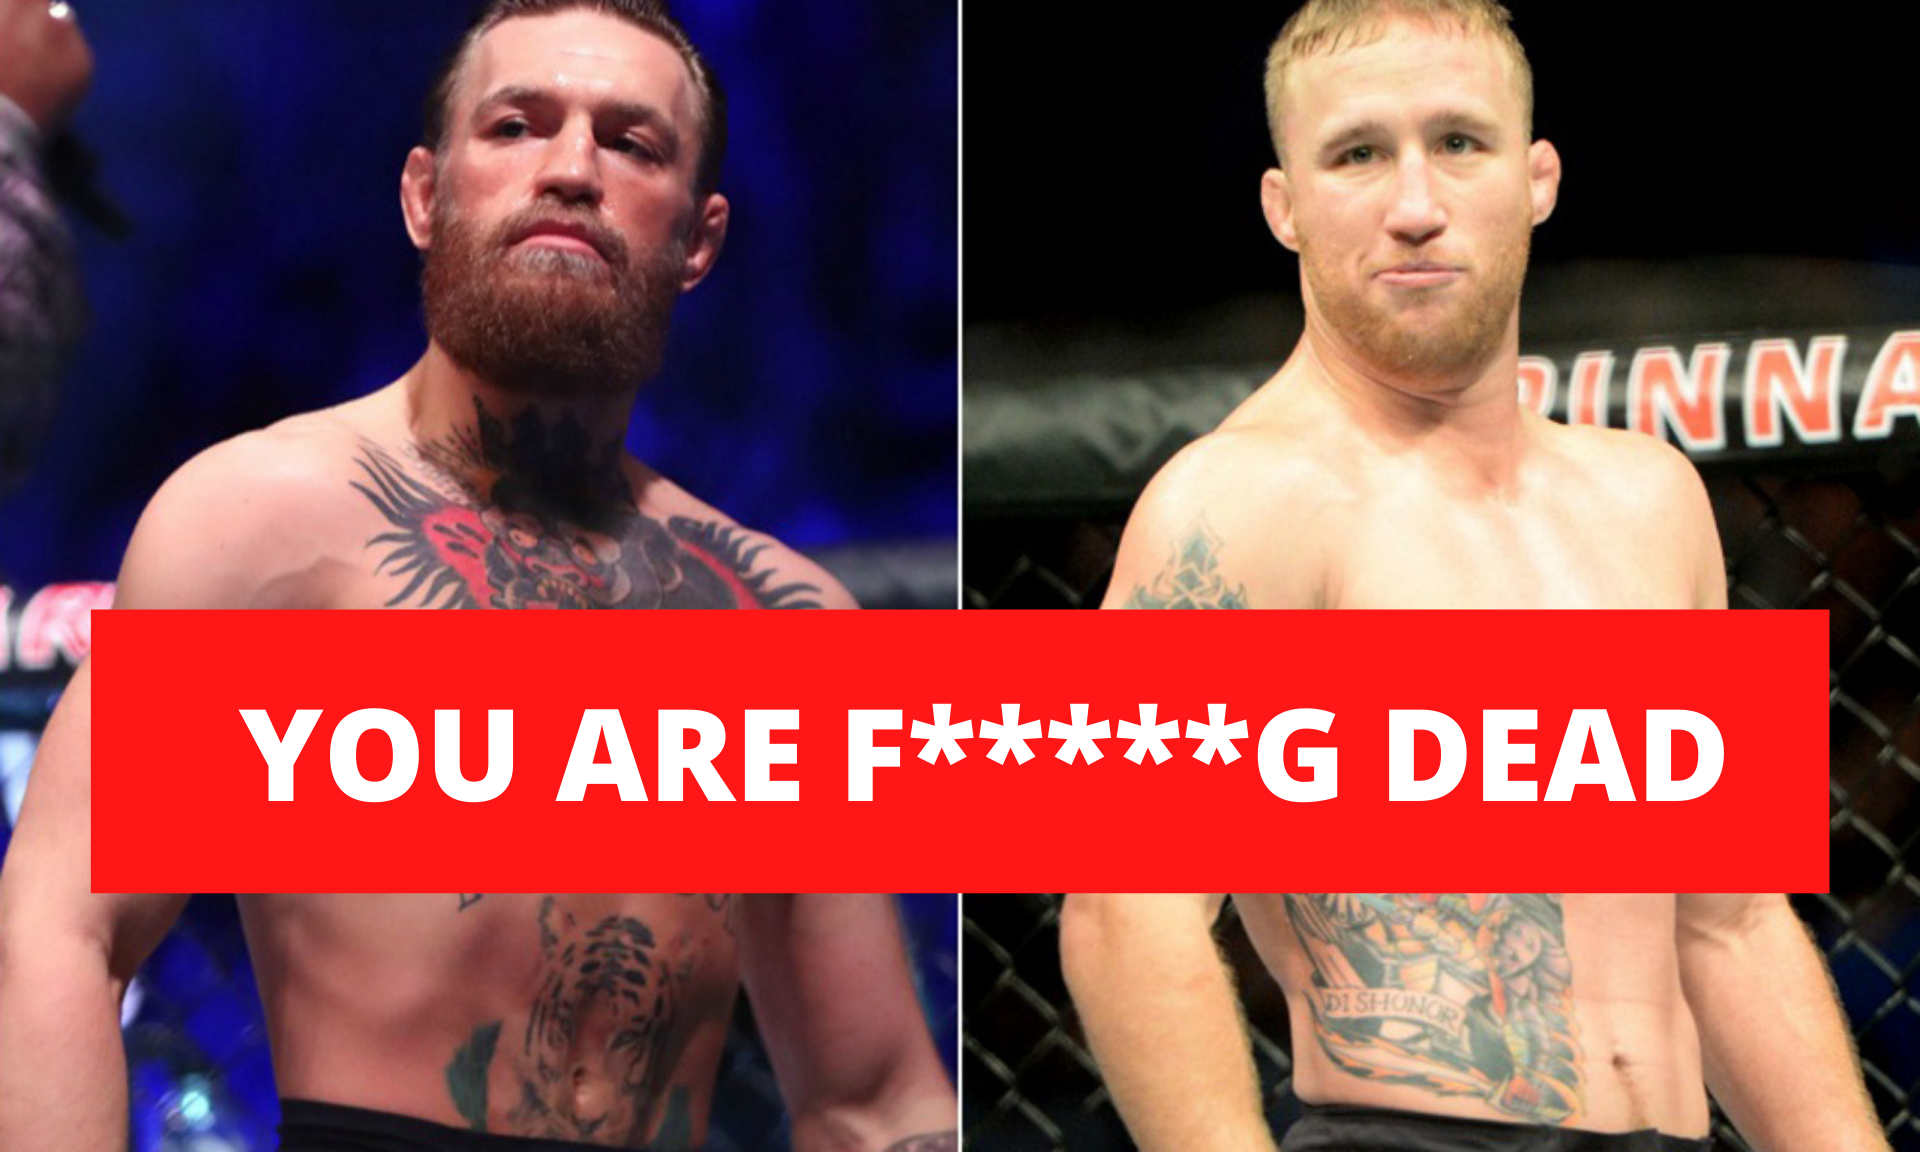 UFC News: Conor McGregor sends heavy warning to Justin Gaethje: 'You are f***ing dead!' - Conor McGregor